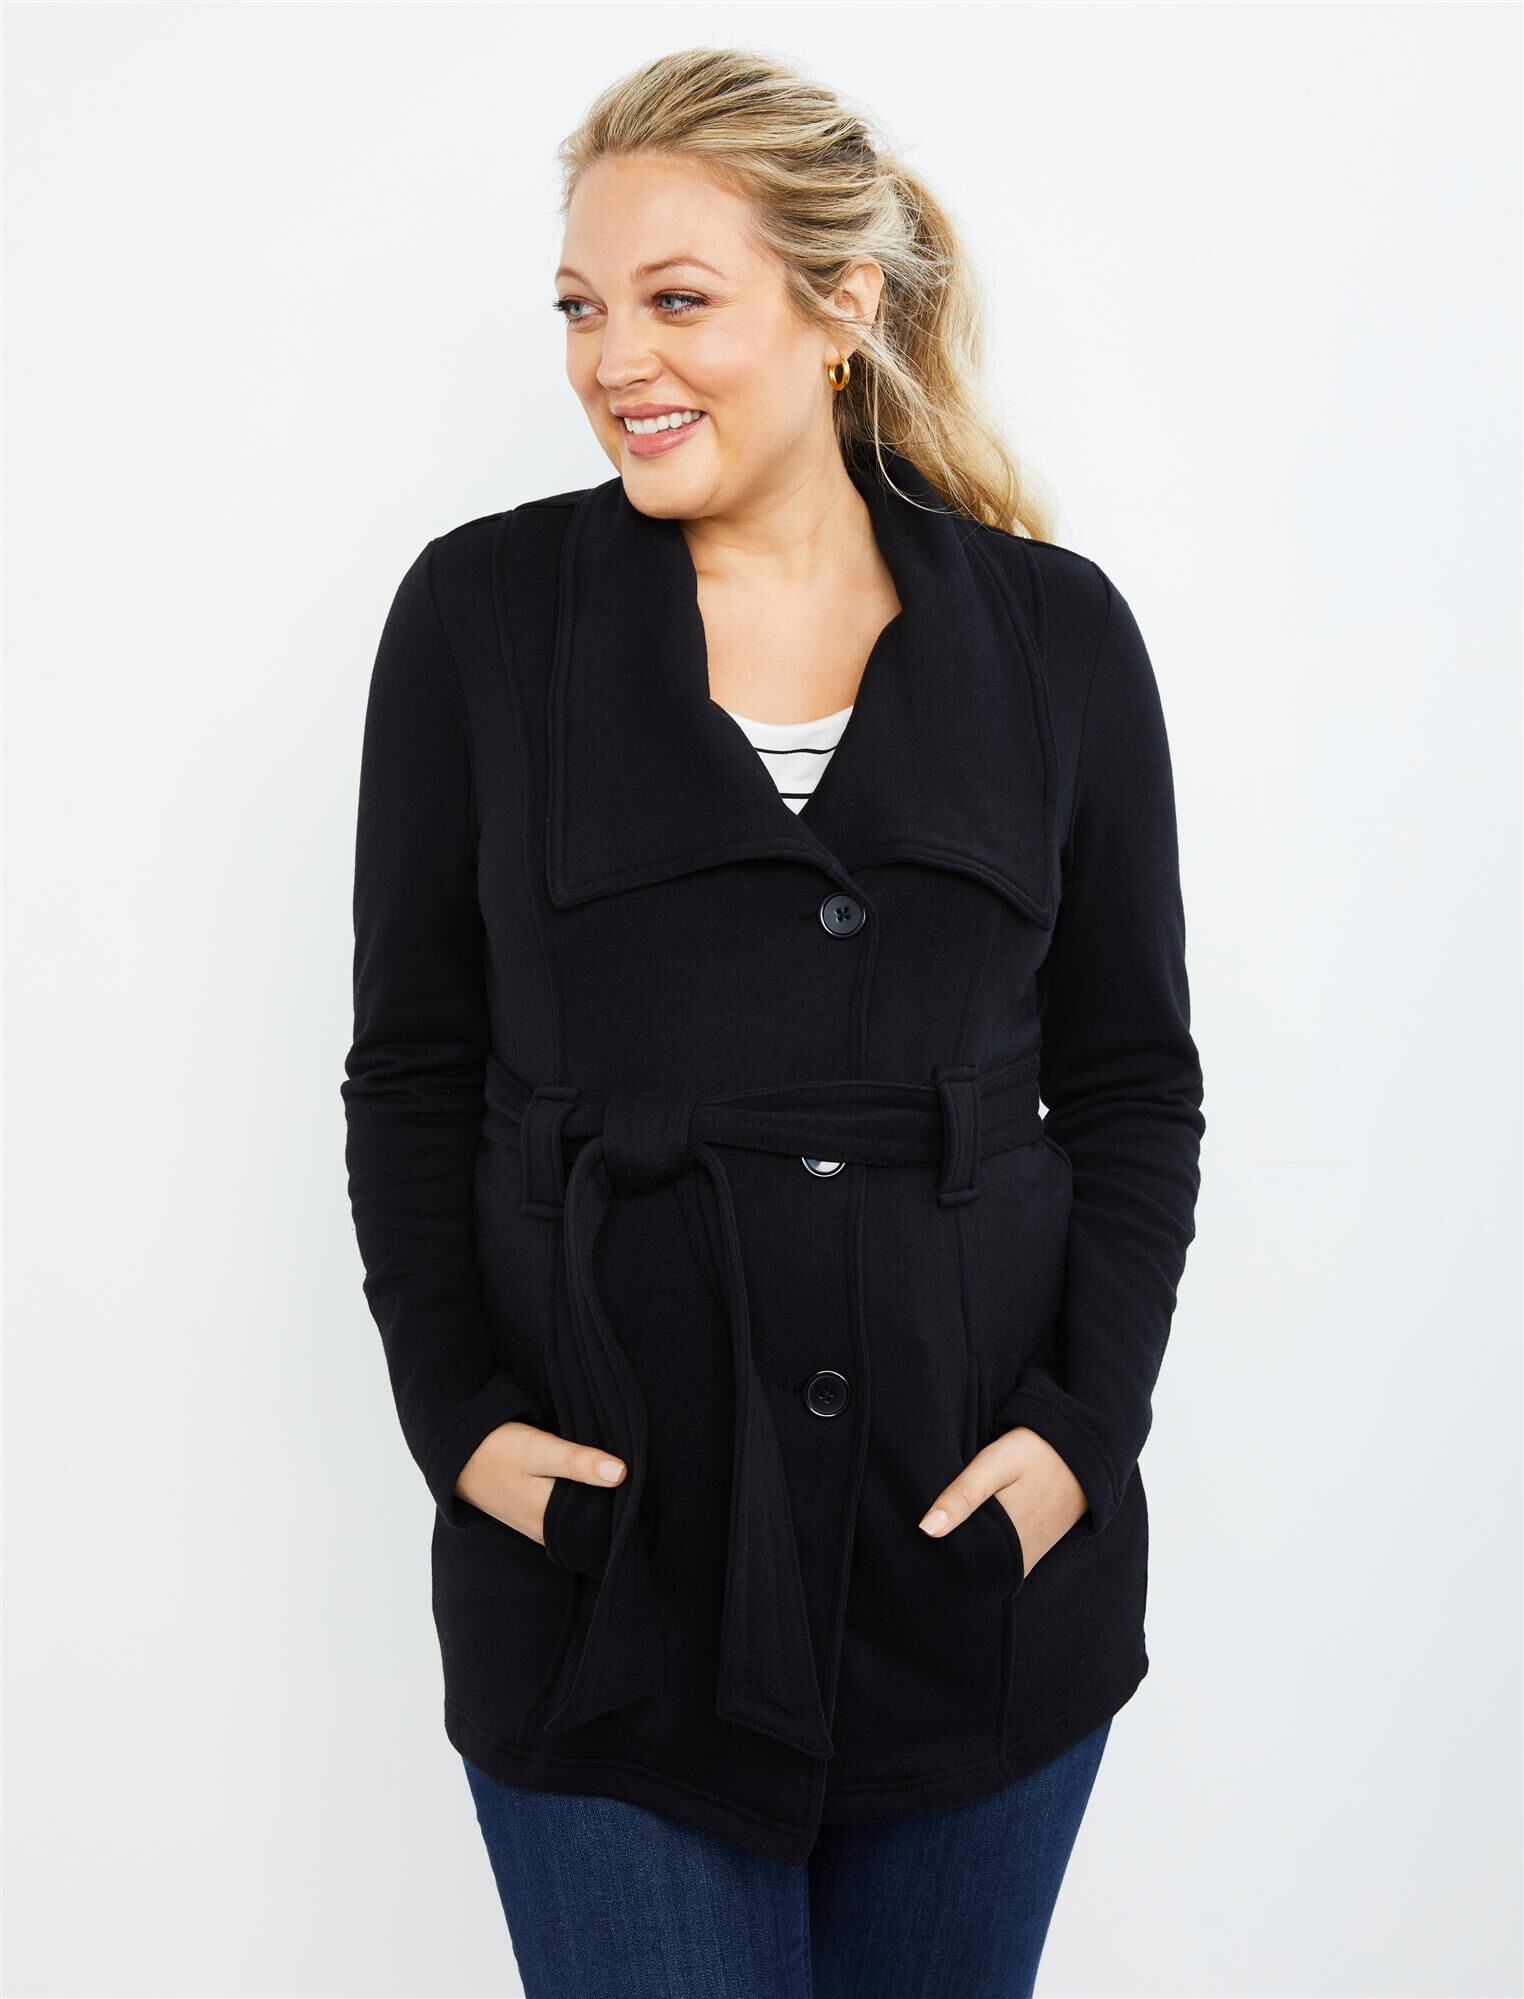 Removable Waist Tie French Terry Maternity Jacket